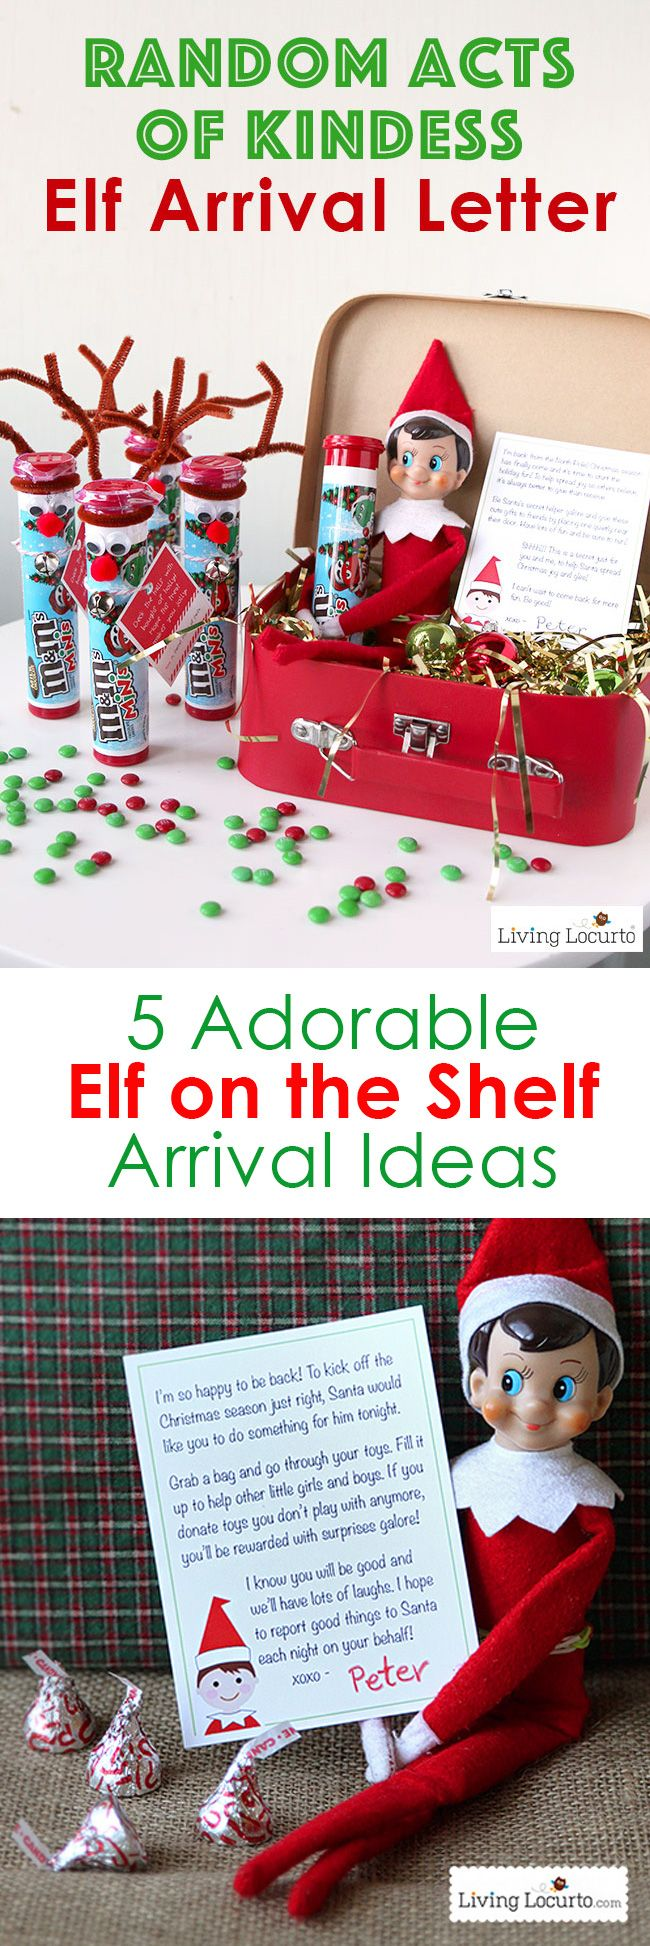 Best Elf on the Shelf Arrival Ideas